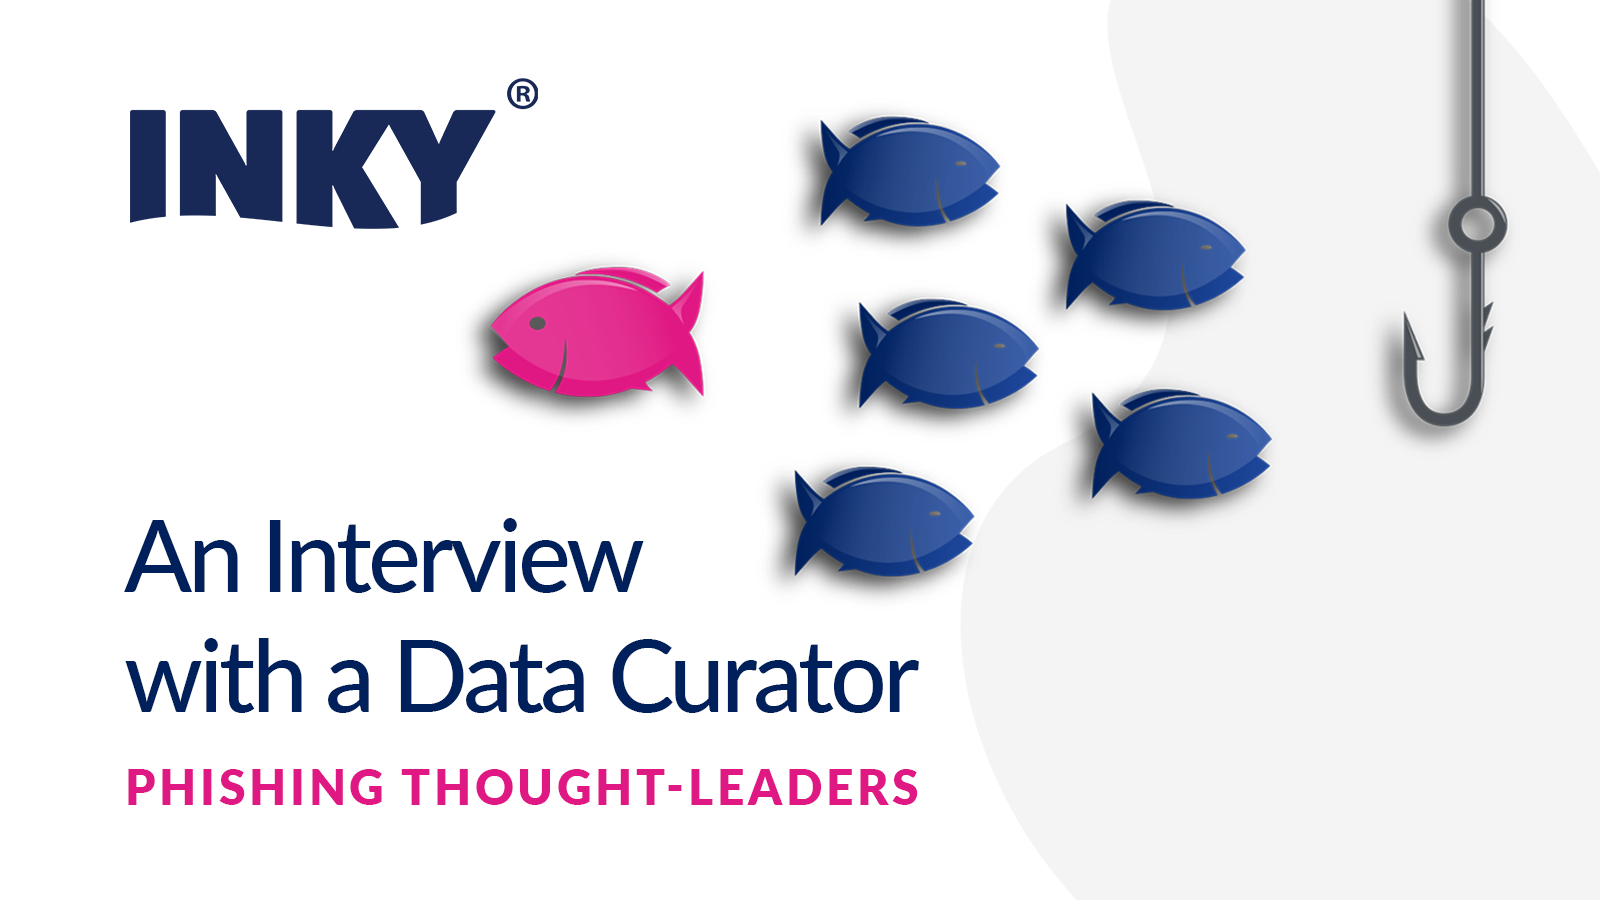 Phishing Thought Leaders - An Interview with Data Curator, Bukar Alibe